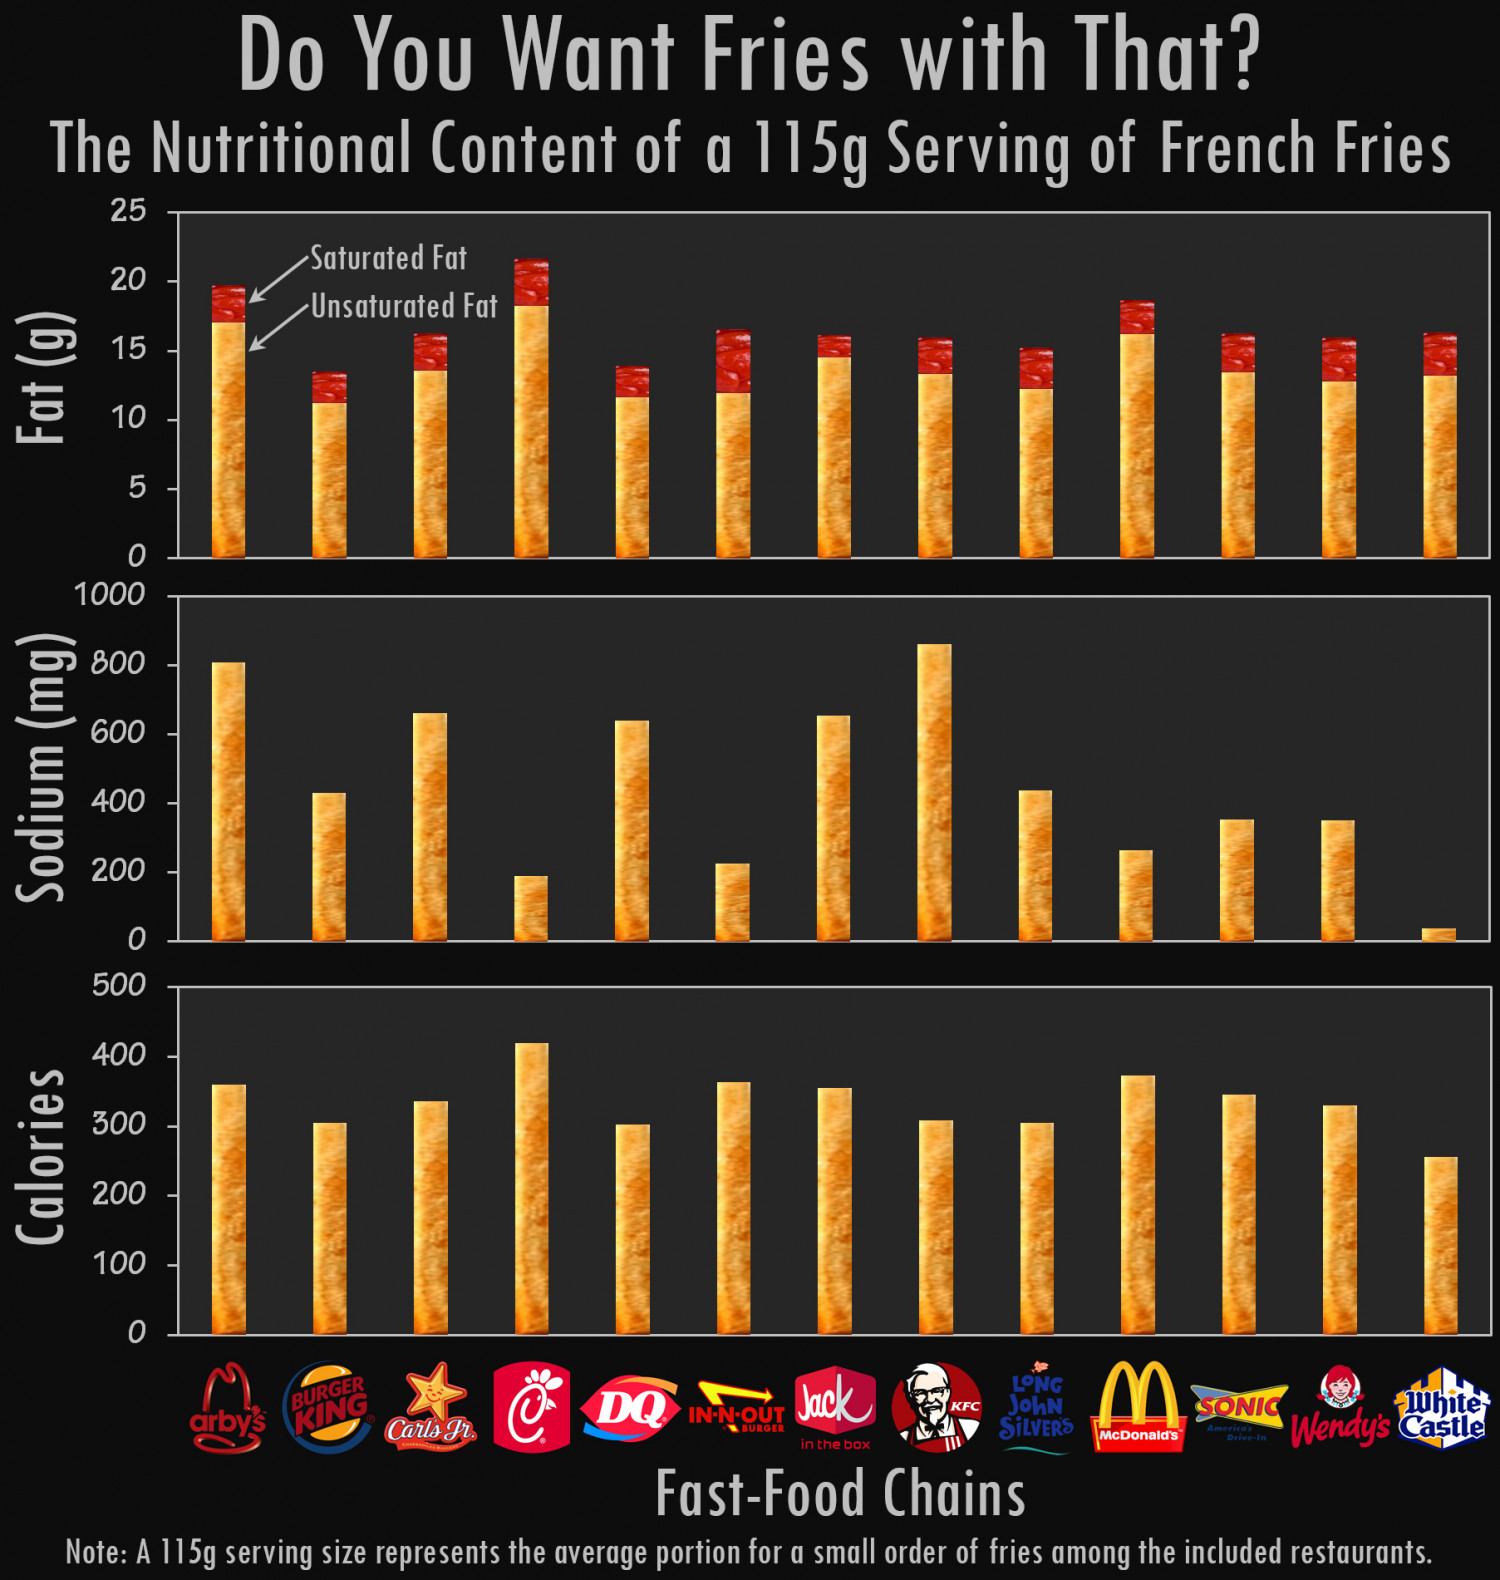 Want Fries with That? Infographic